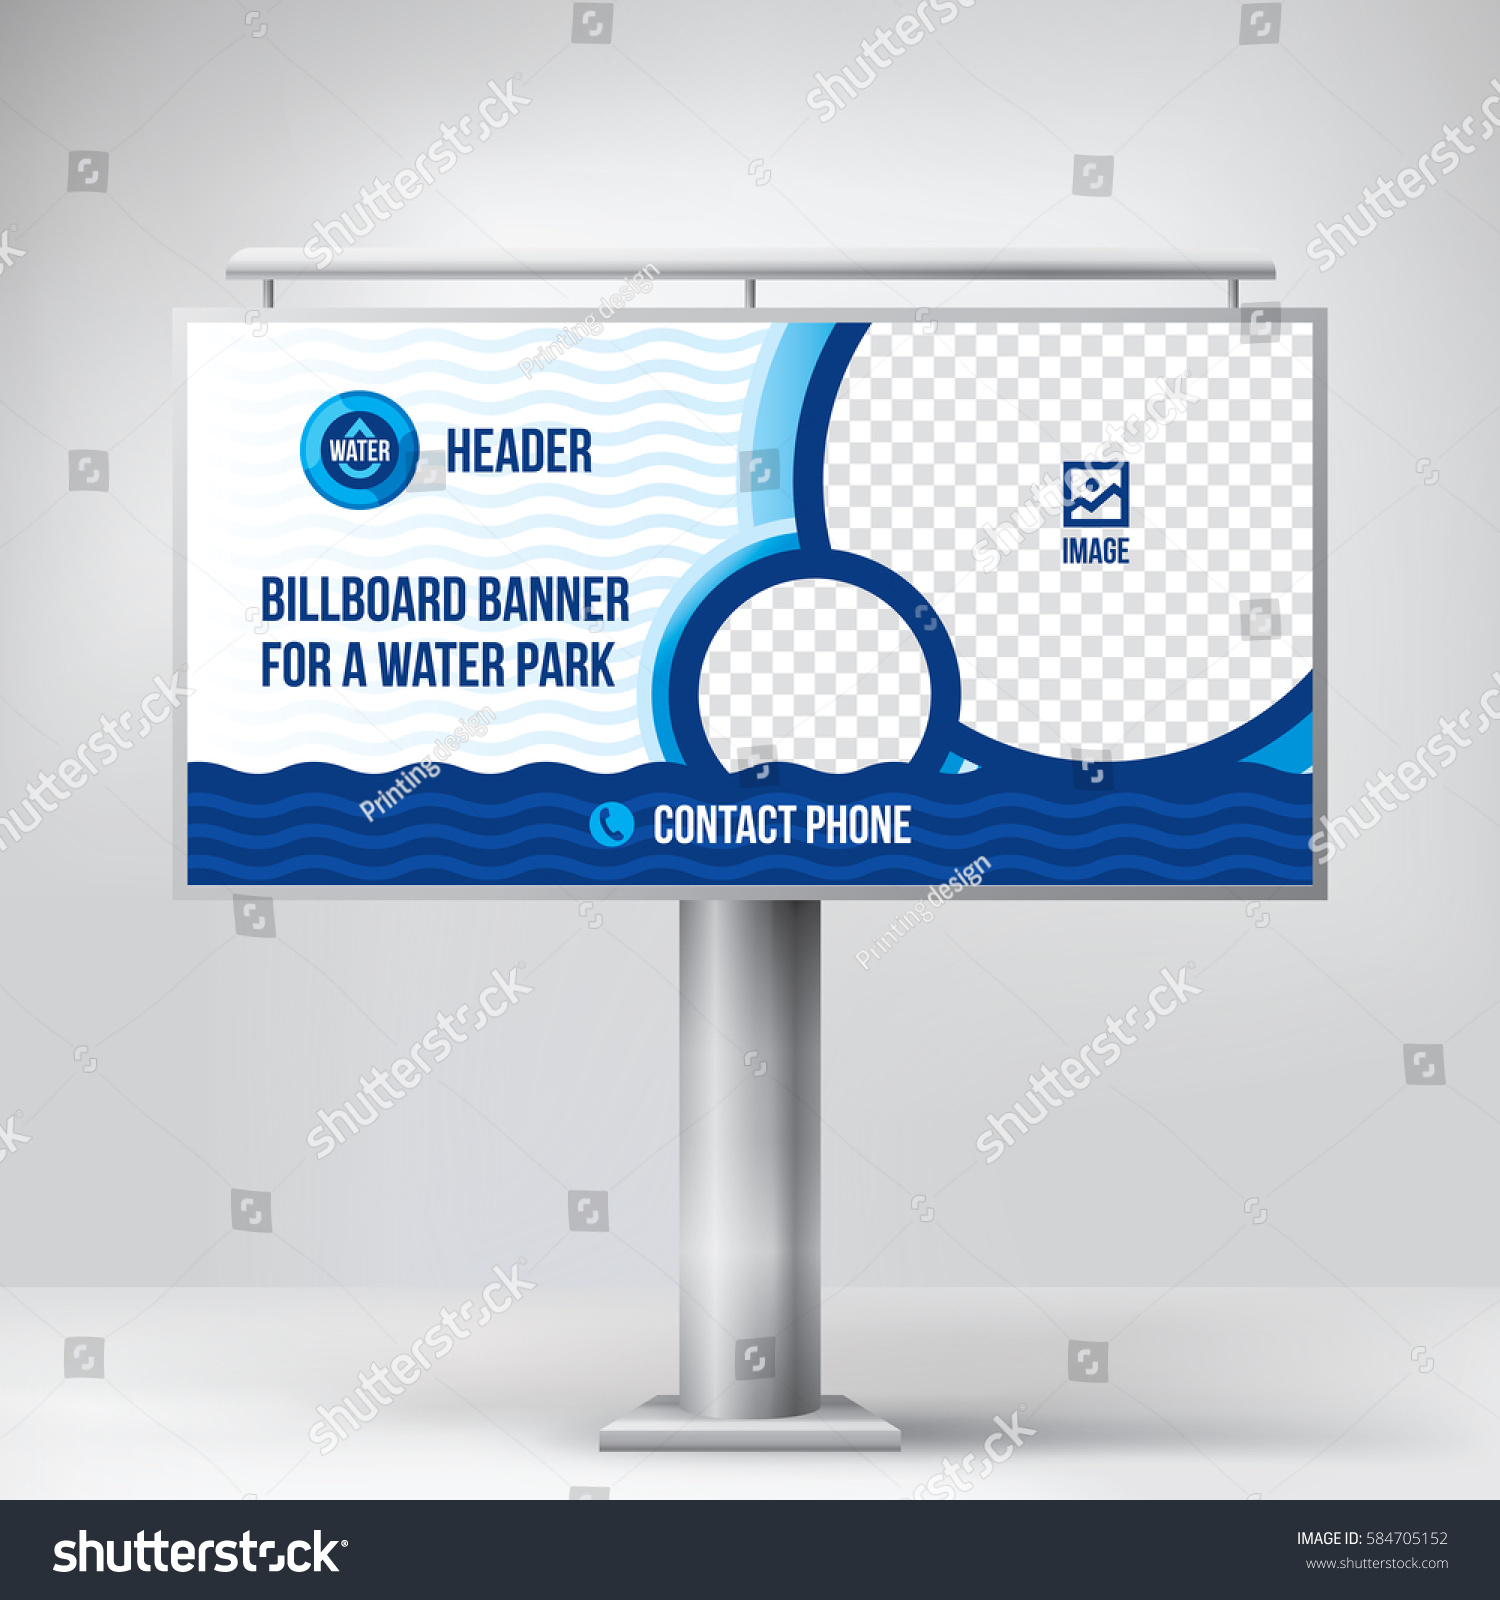 Billboard design water park template background stock vector billboard design for water park template background vector maxwellsz